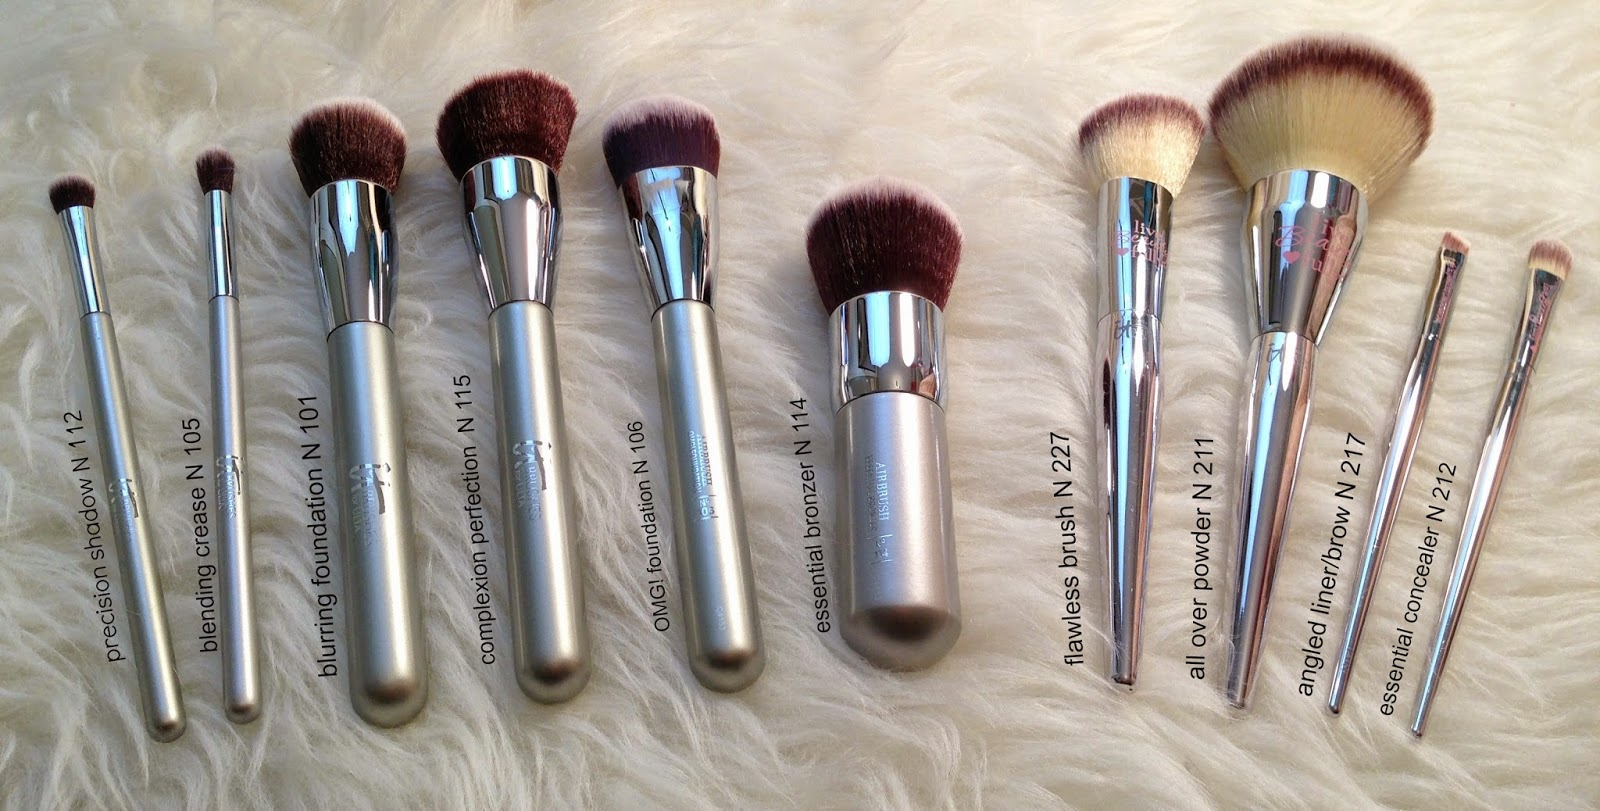 It Cosmetics x ULTA Airbrush Complexion Perfection Brush #115 by IT Cosmetics #15